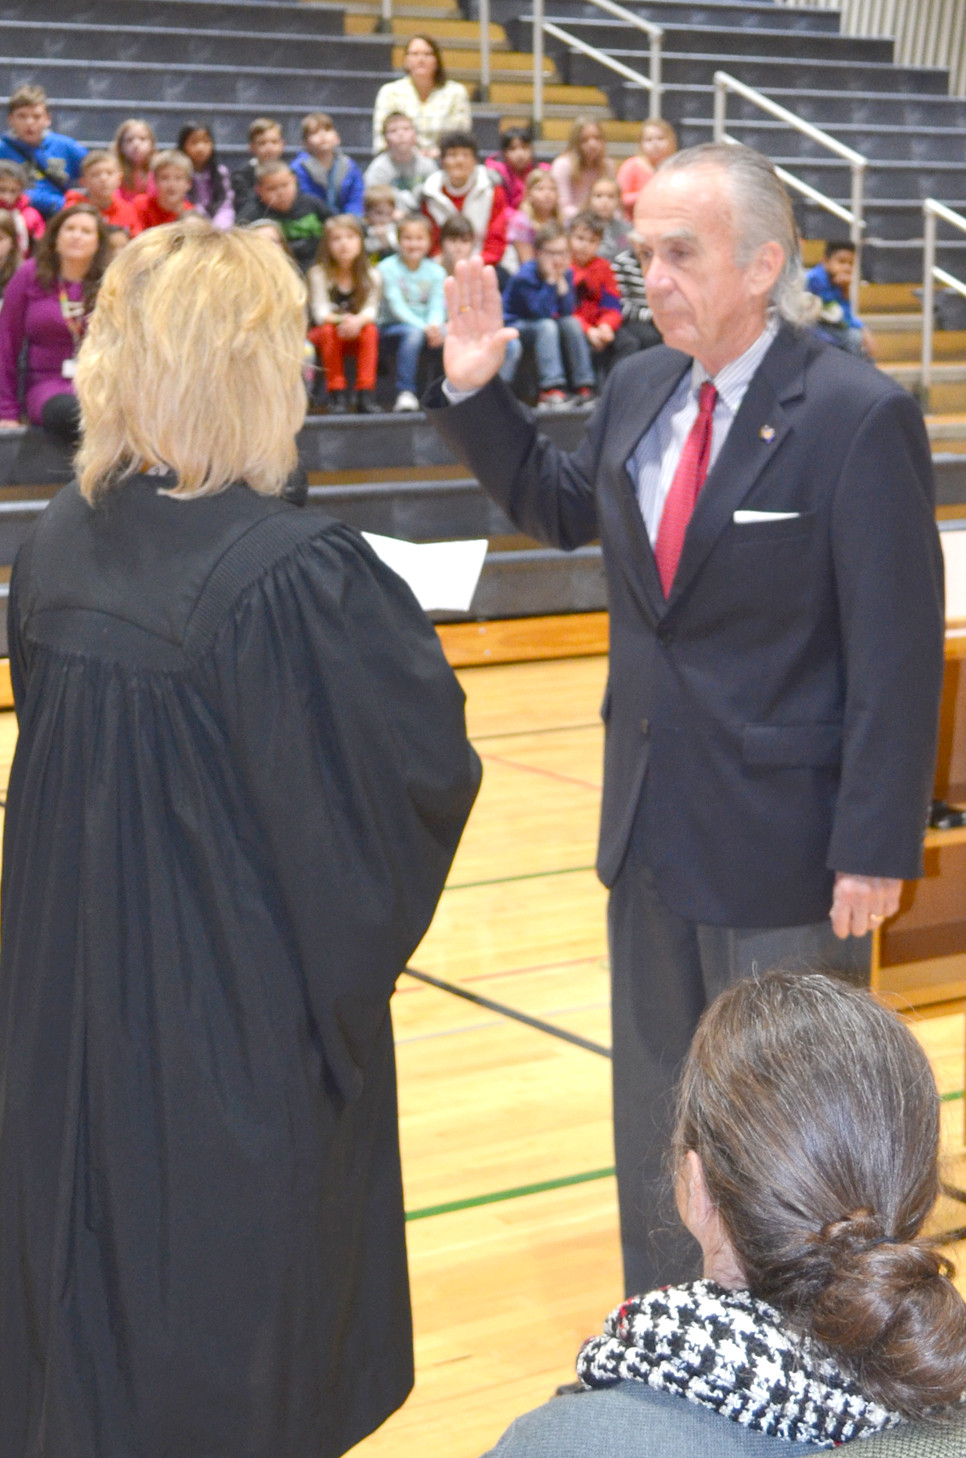 AMBROSE WILSON IV, who has served on the Woodford County Board of Education for over two decades, was sworn-in for another four-year term on Monday afternoon, Jan. 9 at Northside Elementary School in Midway. Woodford District Judge Mary Jane Phelps administered the oath of office at a ceremony attended by third-, fourth- and fifth-graders. (Photo by Bob Vlach)